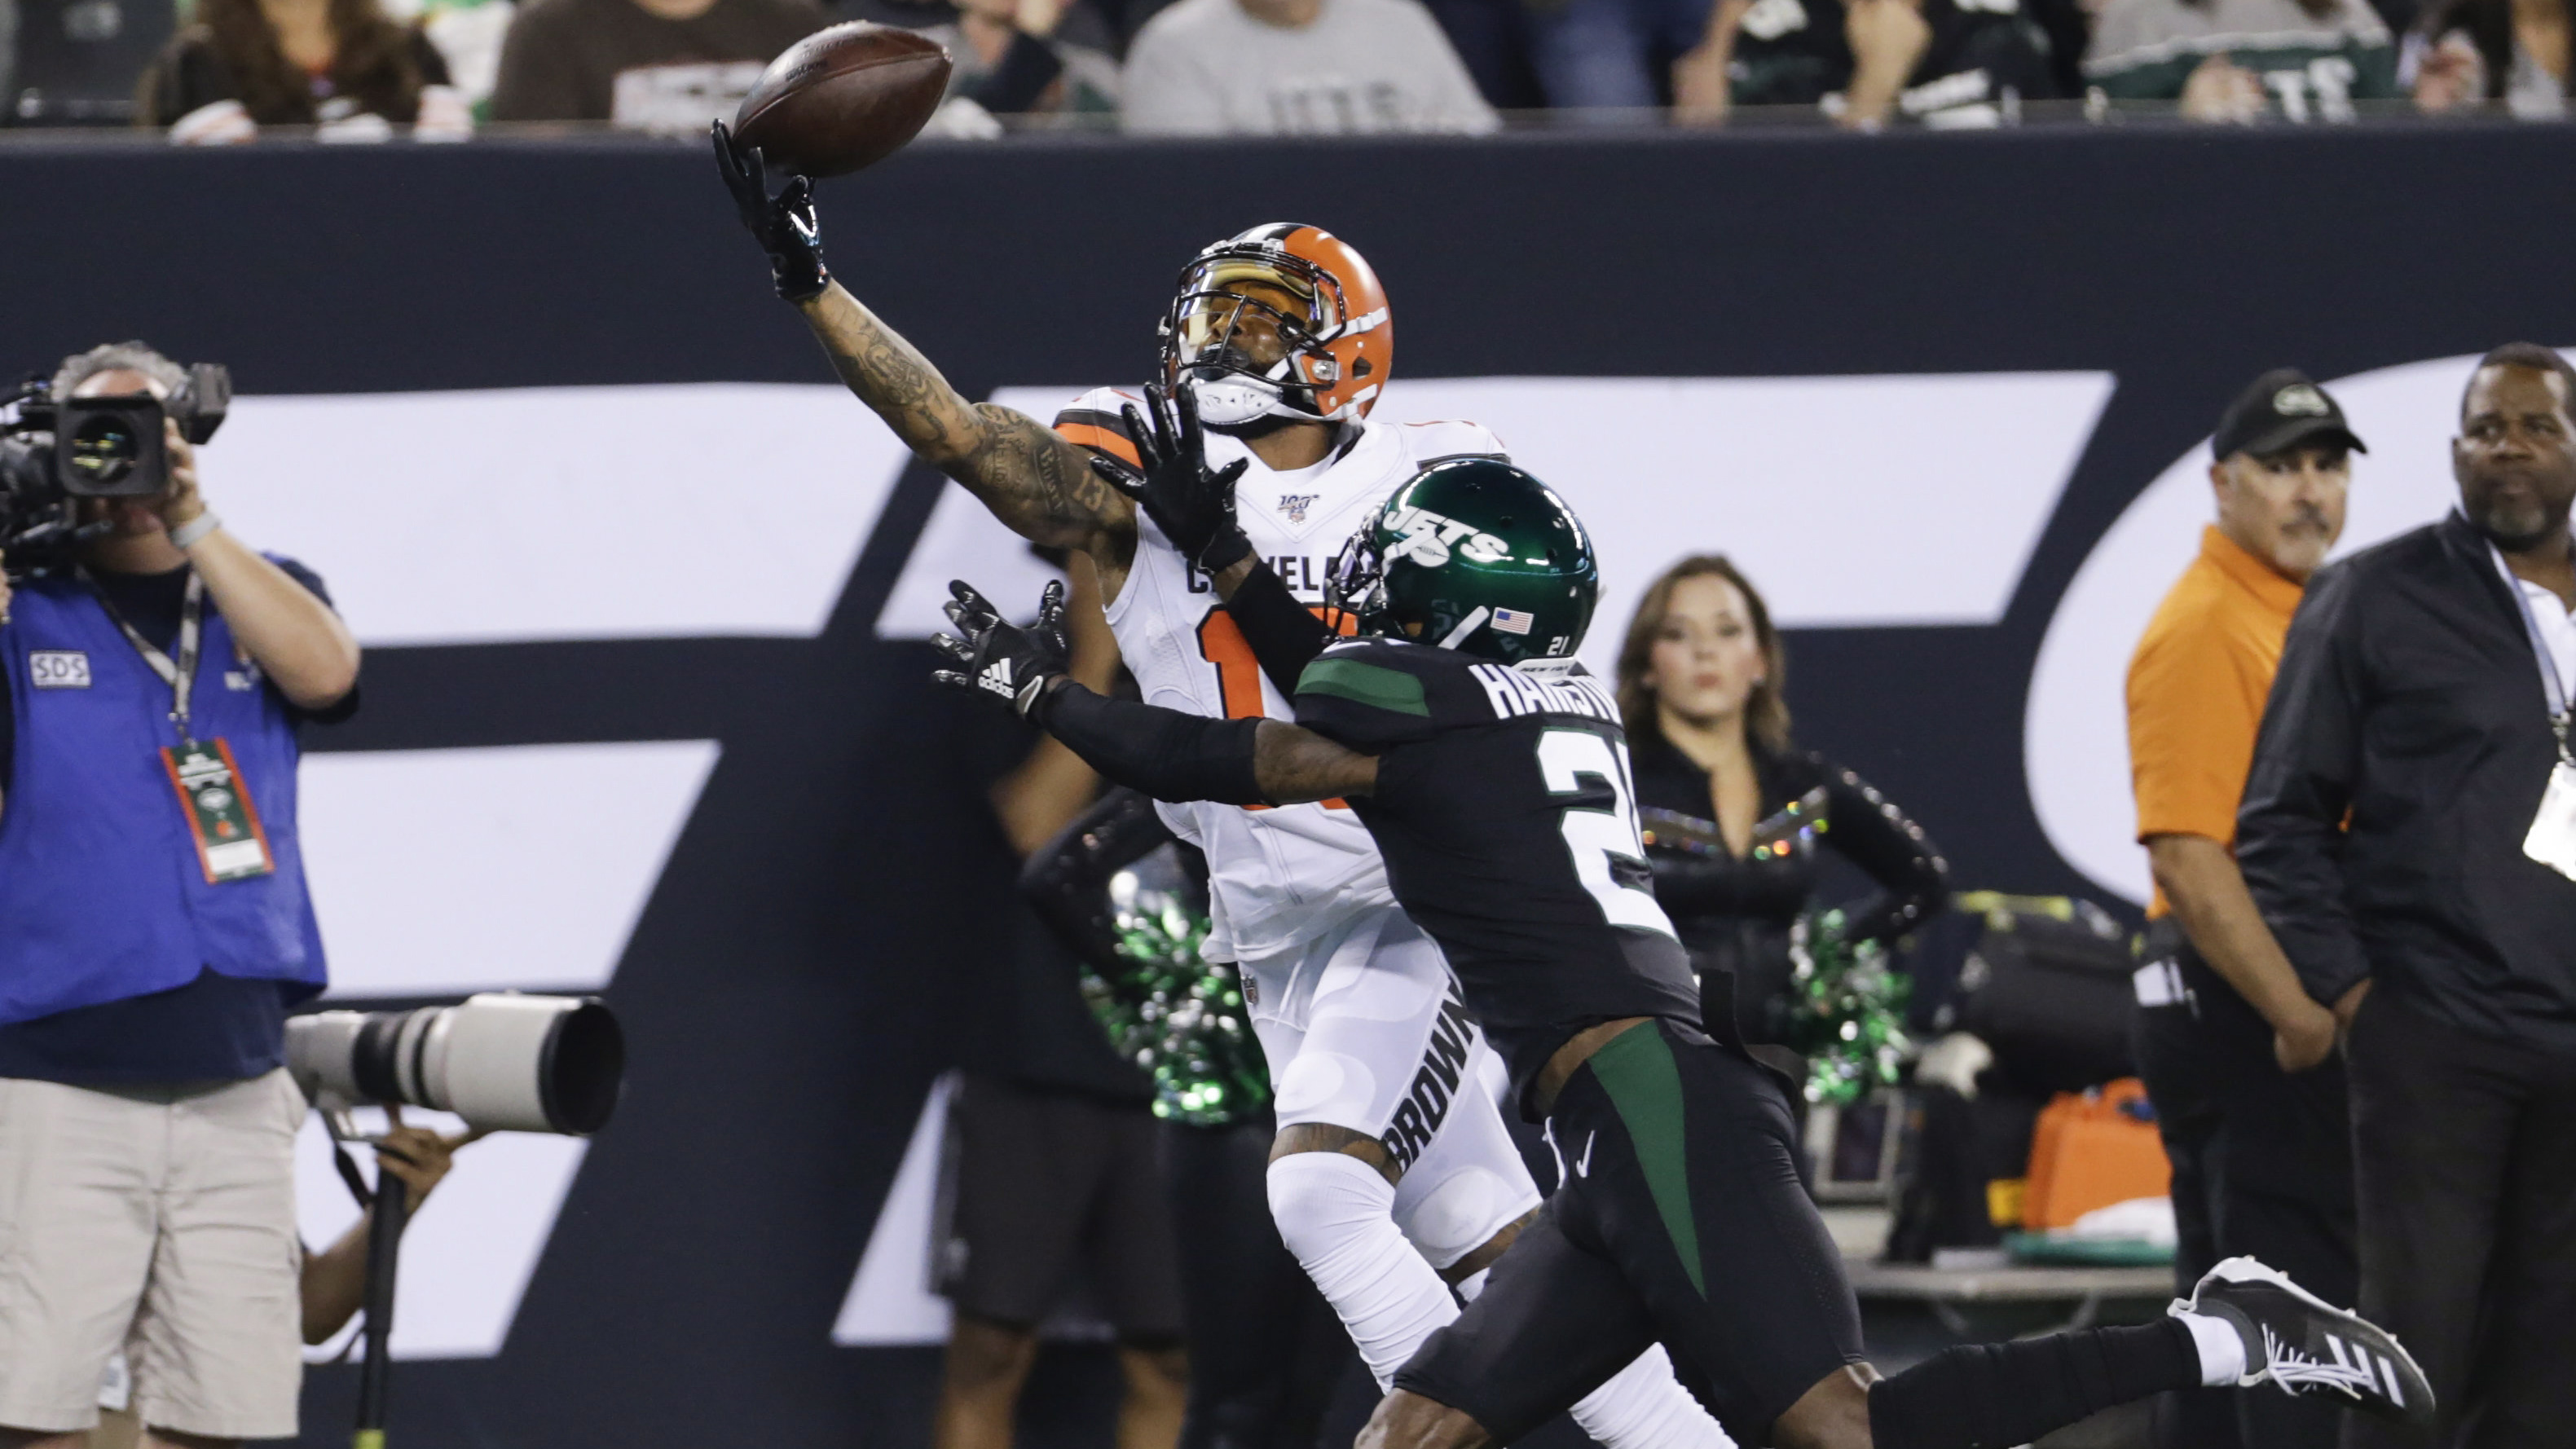 finest selection 14c9e 4d3c8 Odell Beckham Jr. puts on show in MetLife return as Browns ...